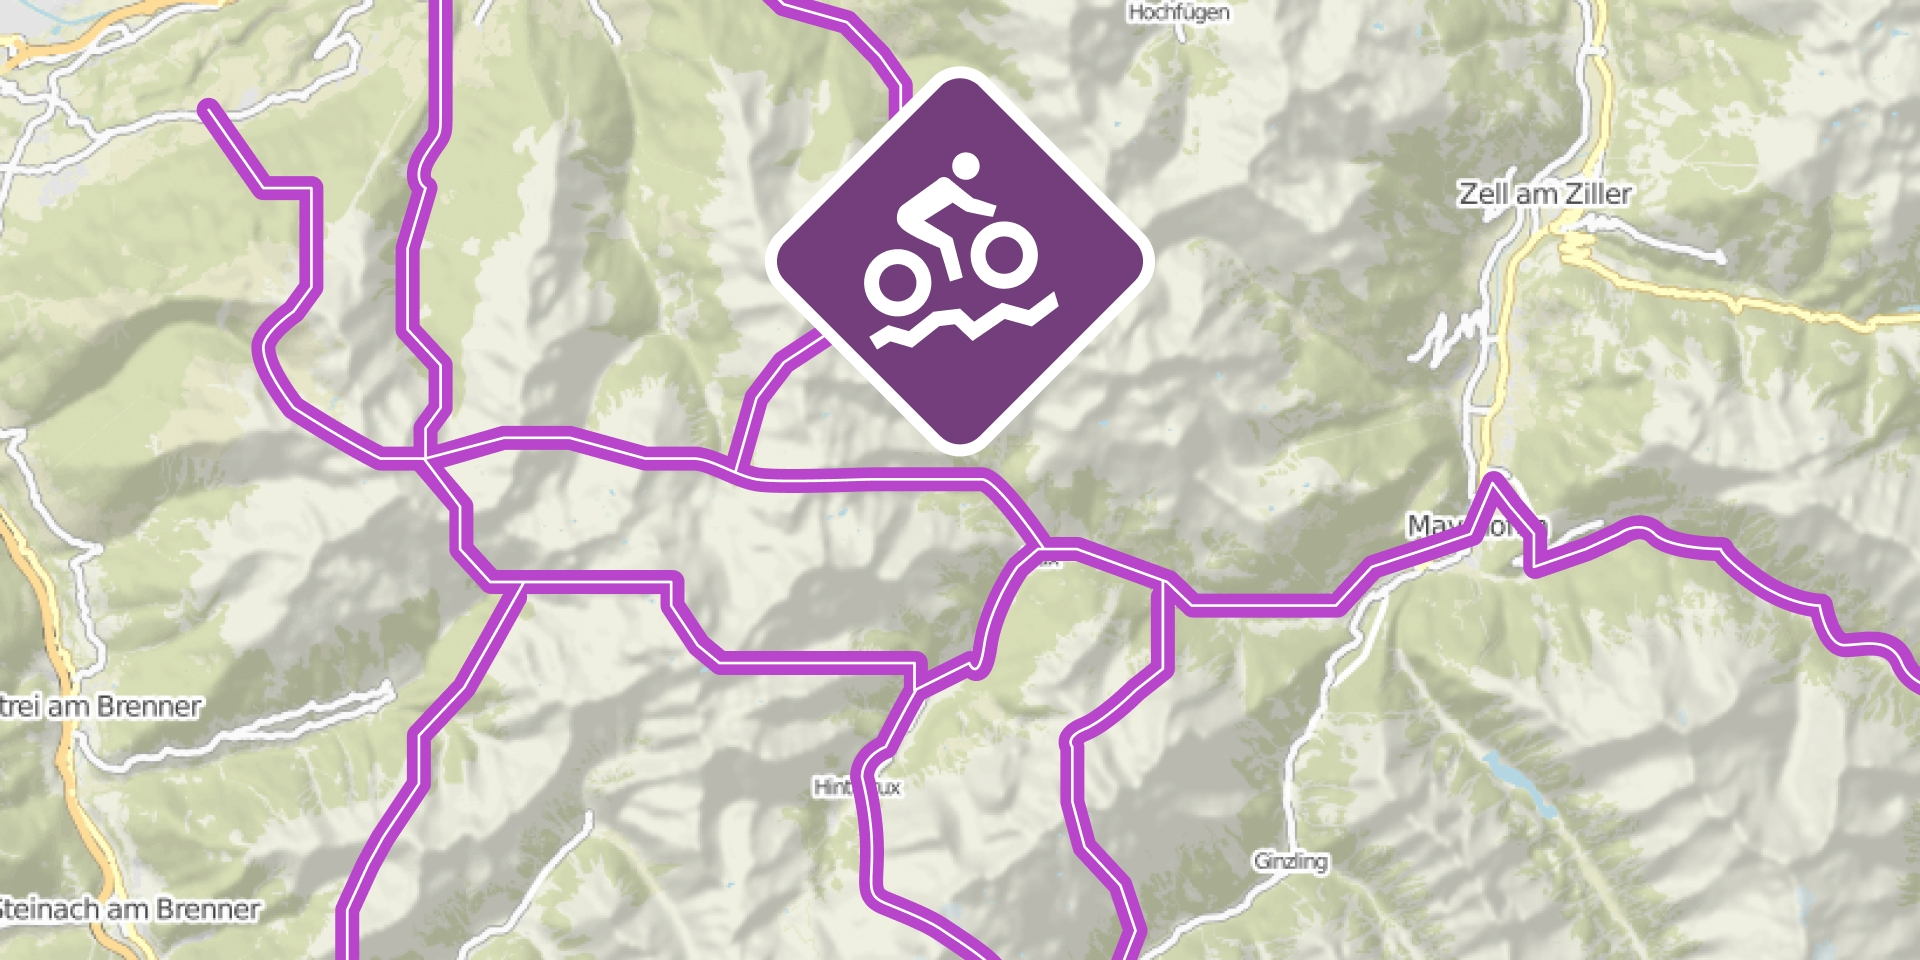 sport_specific_maps_3